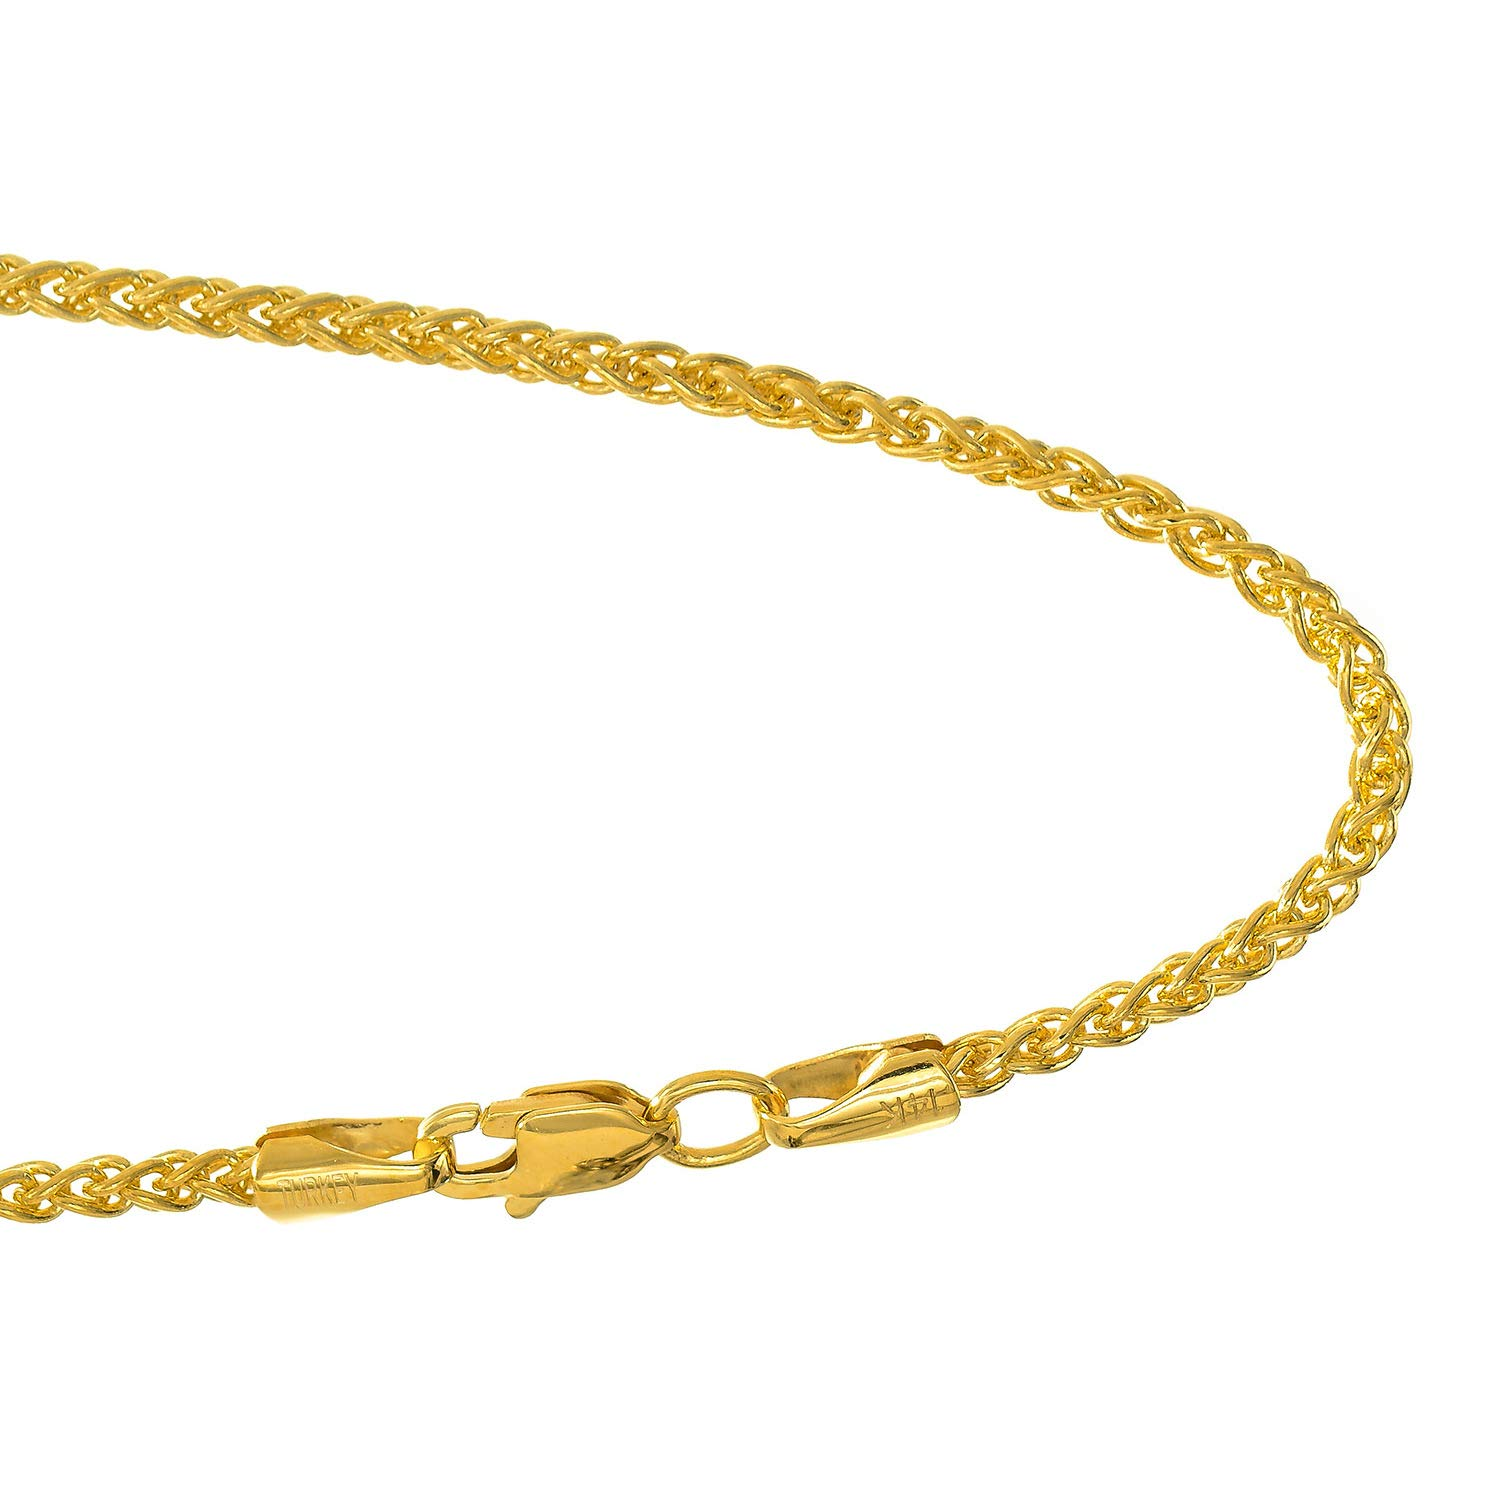 JewelStop 14k Solid Yellow Gold 1.5 mm Round Spiga Wheat Chain Necklace, Lobster Claw Clasp - 30'', 8gr. by JewelStop (Image #5)